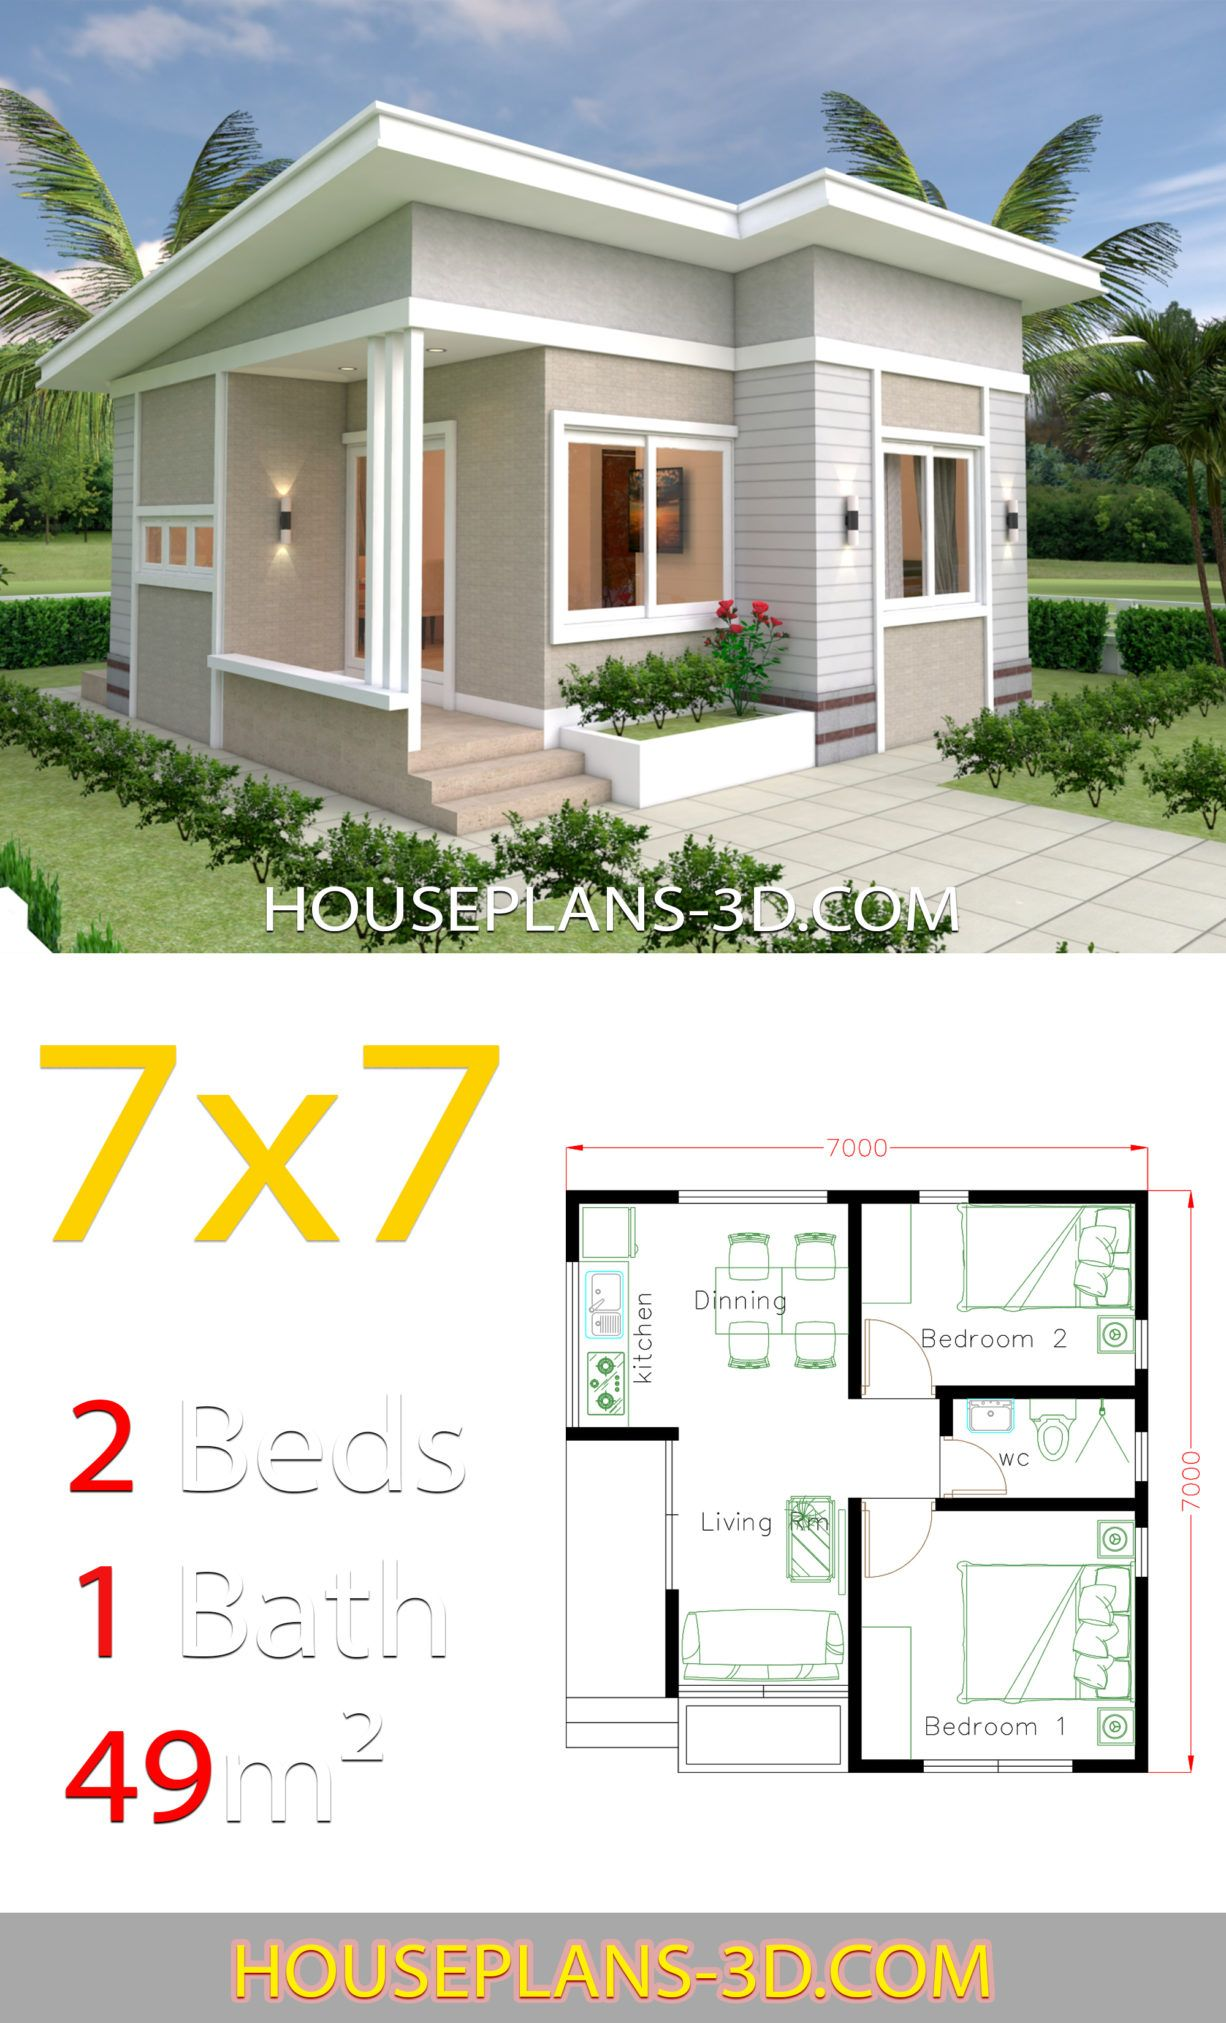 Small House Design 7x7 With 2 Bedrooms Small House Design Plans